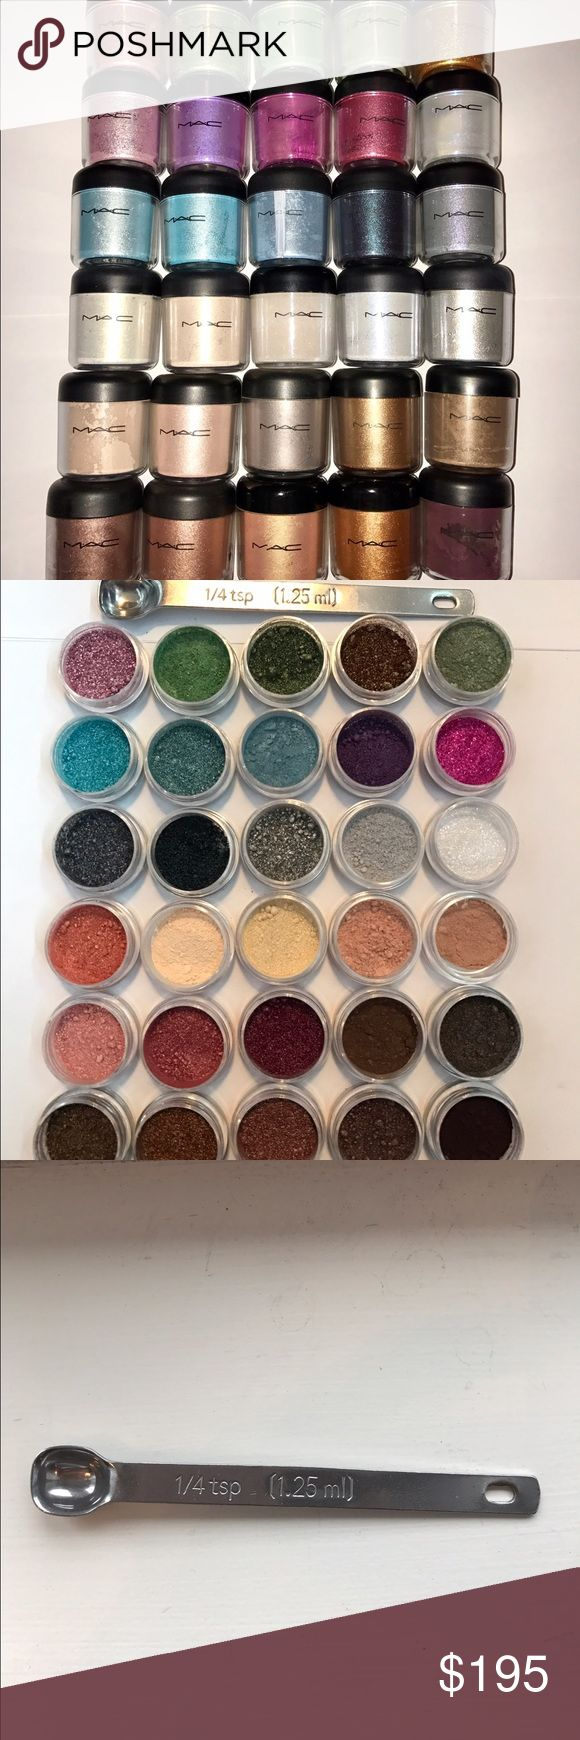 ❄️Rare MAC Sample Set! Authentic (1/4 teaspoon) ❄️CHRISTMAS DAY SUPER SALEONE DAY ONLYThis Mac Pigment Sample Set Includes (30) 1/4 teaspoon of the following Pigments: Gold Stroke, Tan Museum Bronze, Your Ladyship, Melon, Sweet Sienna, Tea Time, Bronze, Smoke Signal, Naked, Vanilla, Polished Ivory, Shimmertime, Lark About, Silver Fog, Sweetie Grey, Mutiny, Golden Blue, Aire-De-Blu, Reflect Blue glitter, Deep Blue Green, Ruby Red, Voilet, Reflects Very Pink glitter, Kitschmas, Apricot Pink…